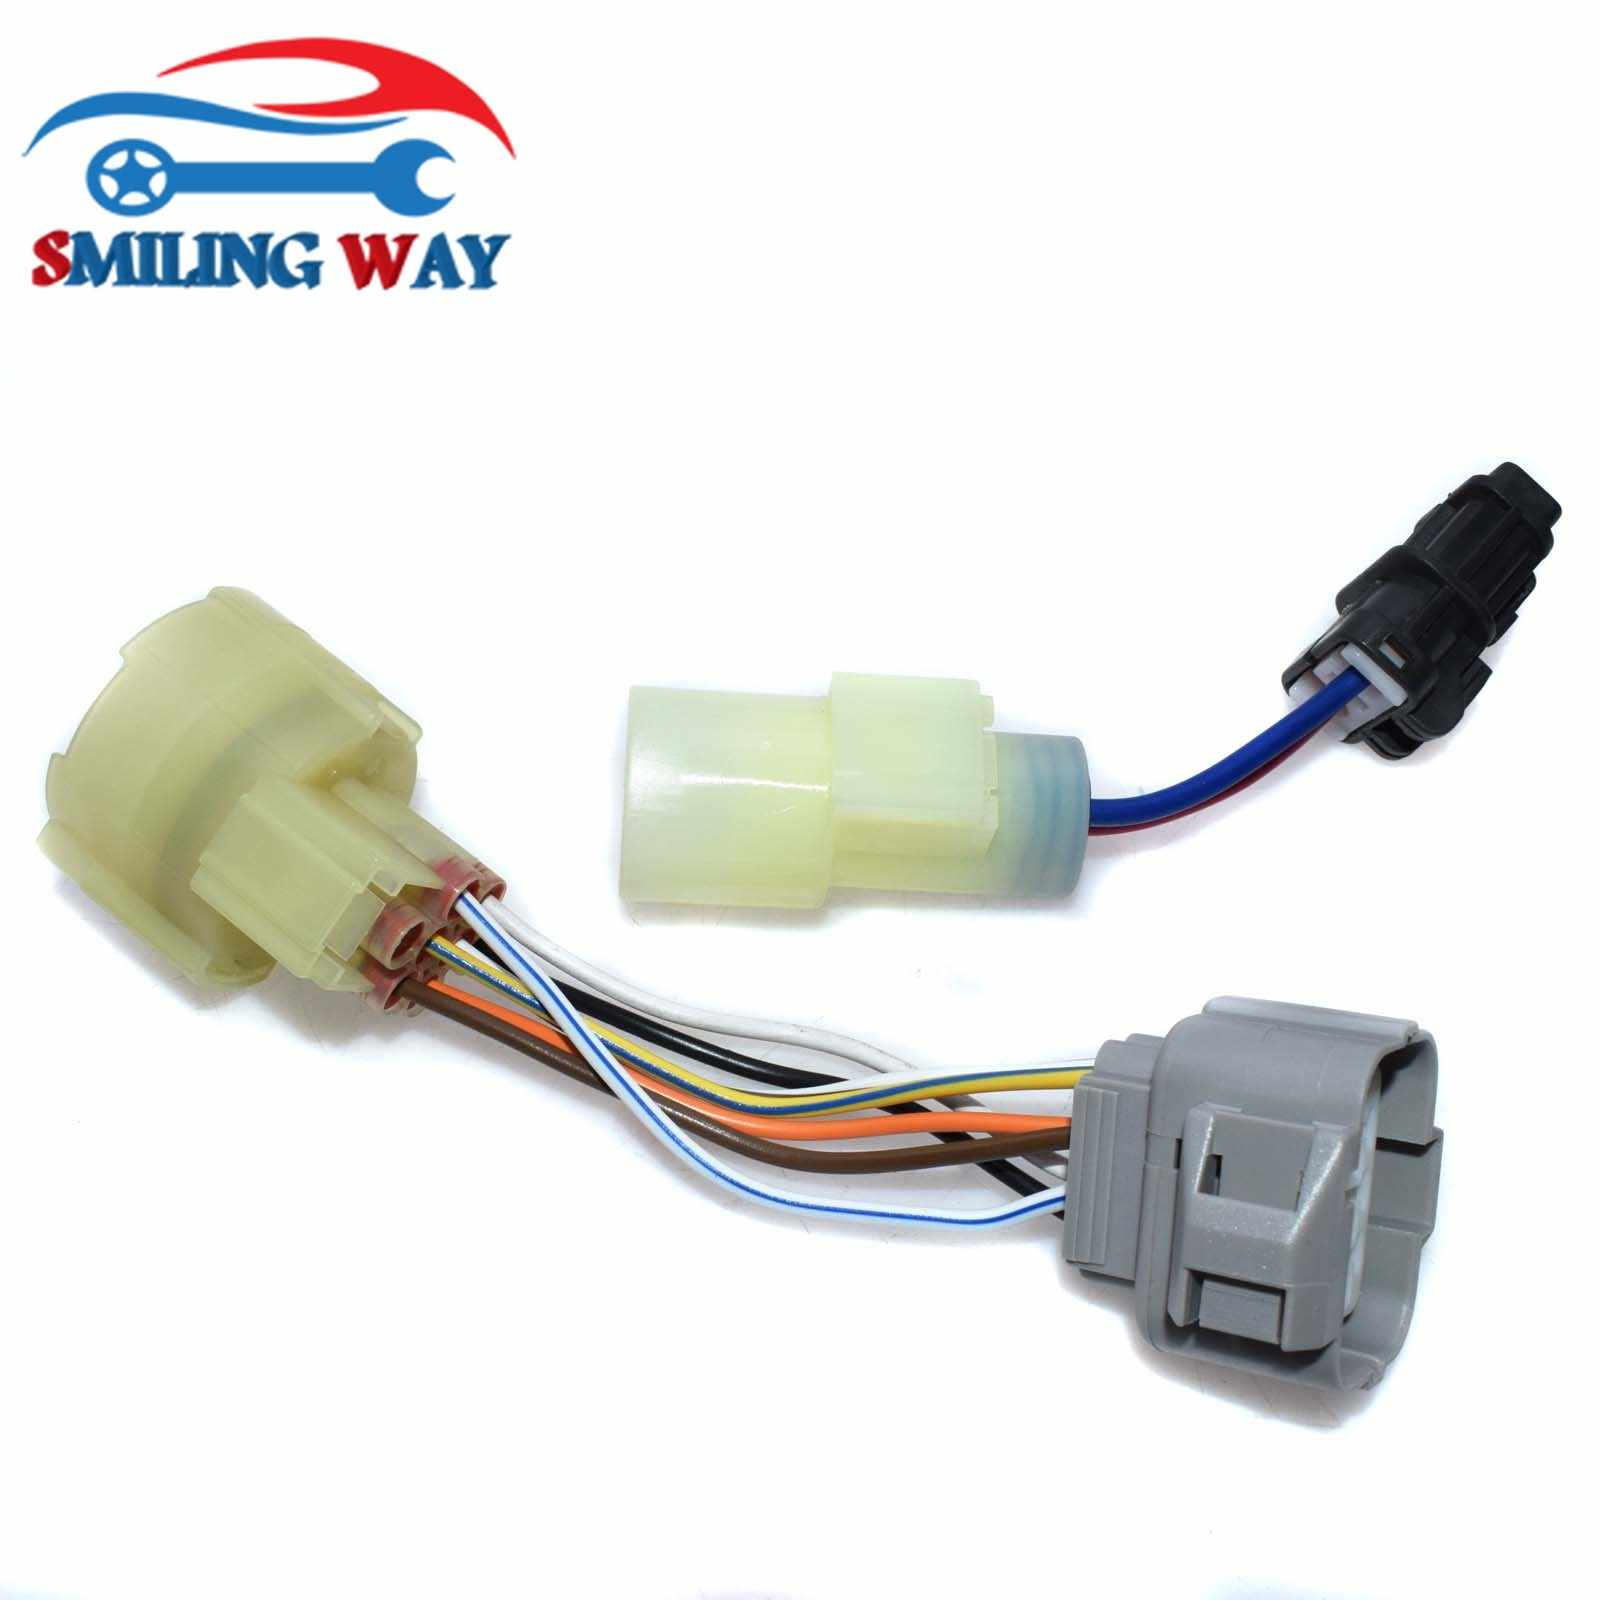 hight resolution of  obd0 to obd1 ecu distributor adaptor connector wire harness cable for honda crx civic prelude acura